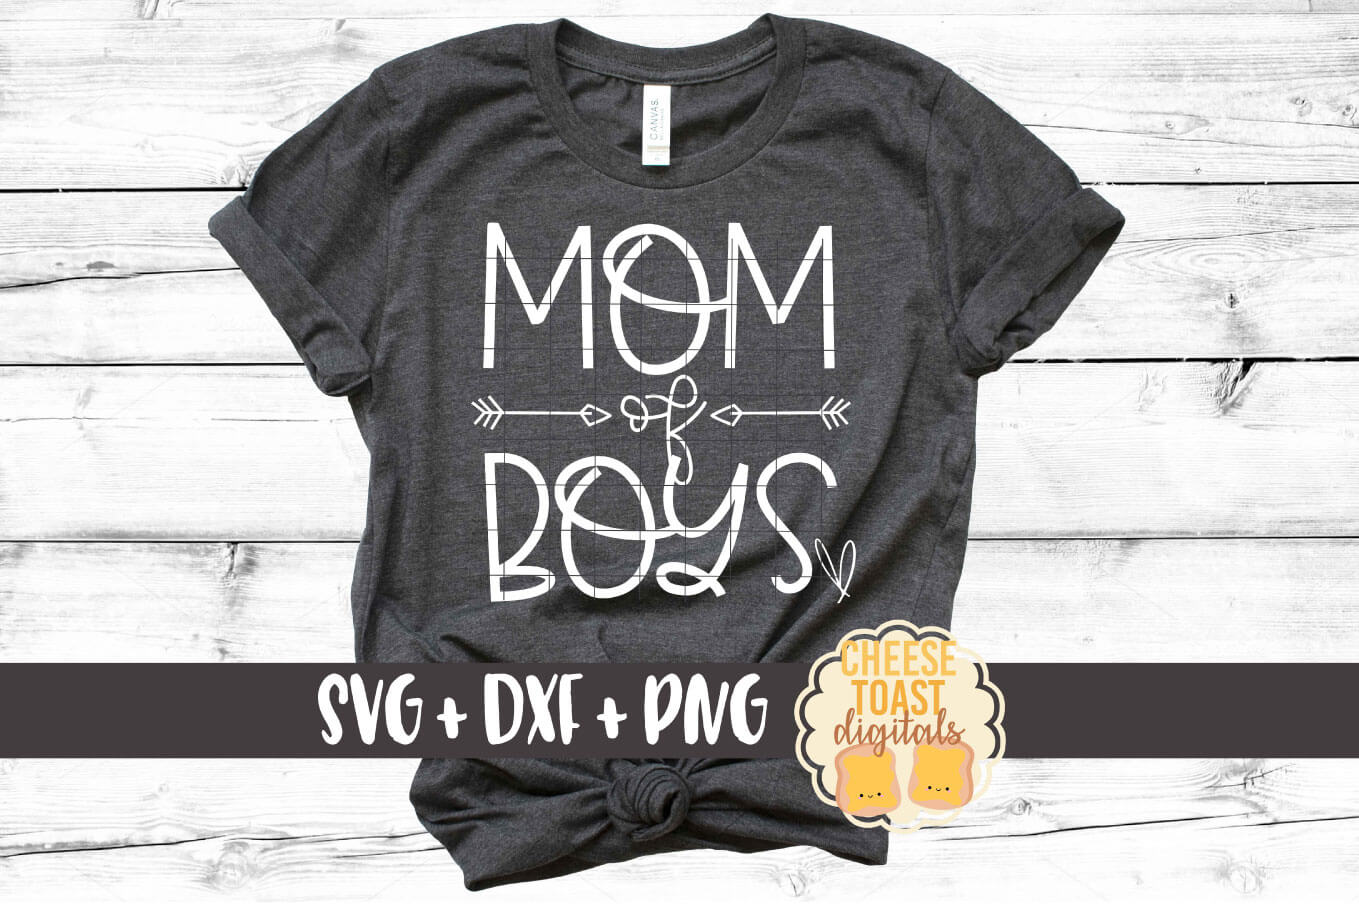 Mom of Boys - Mom SVG PNG DXF Cut Files example image 1